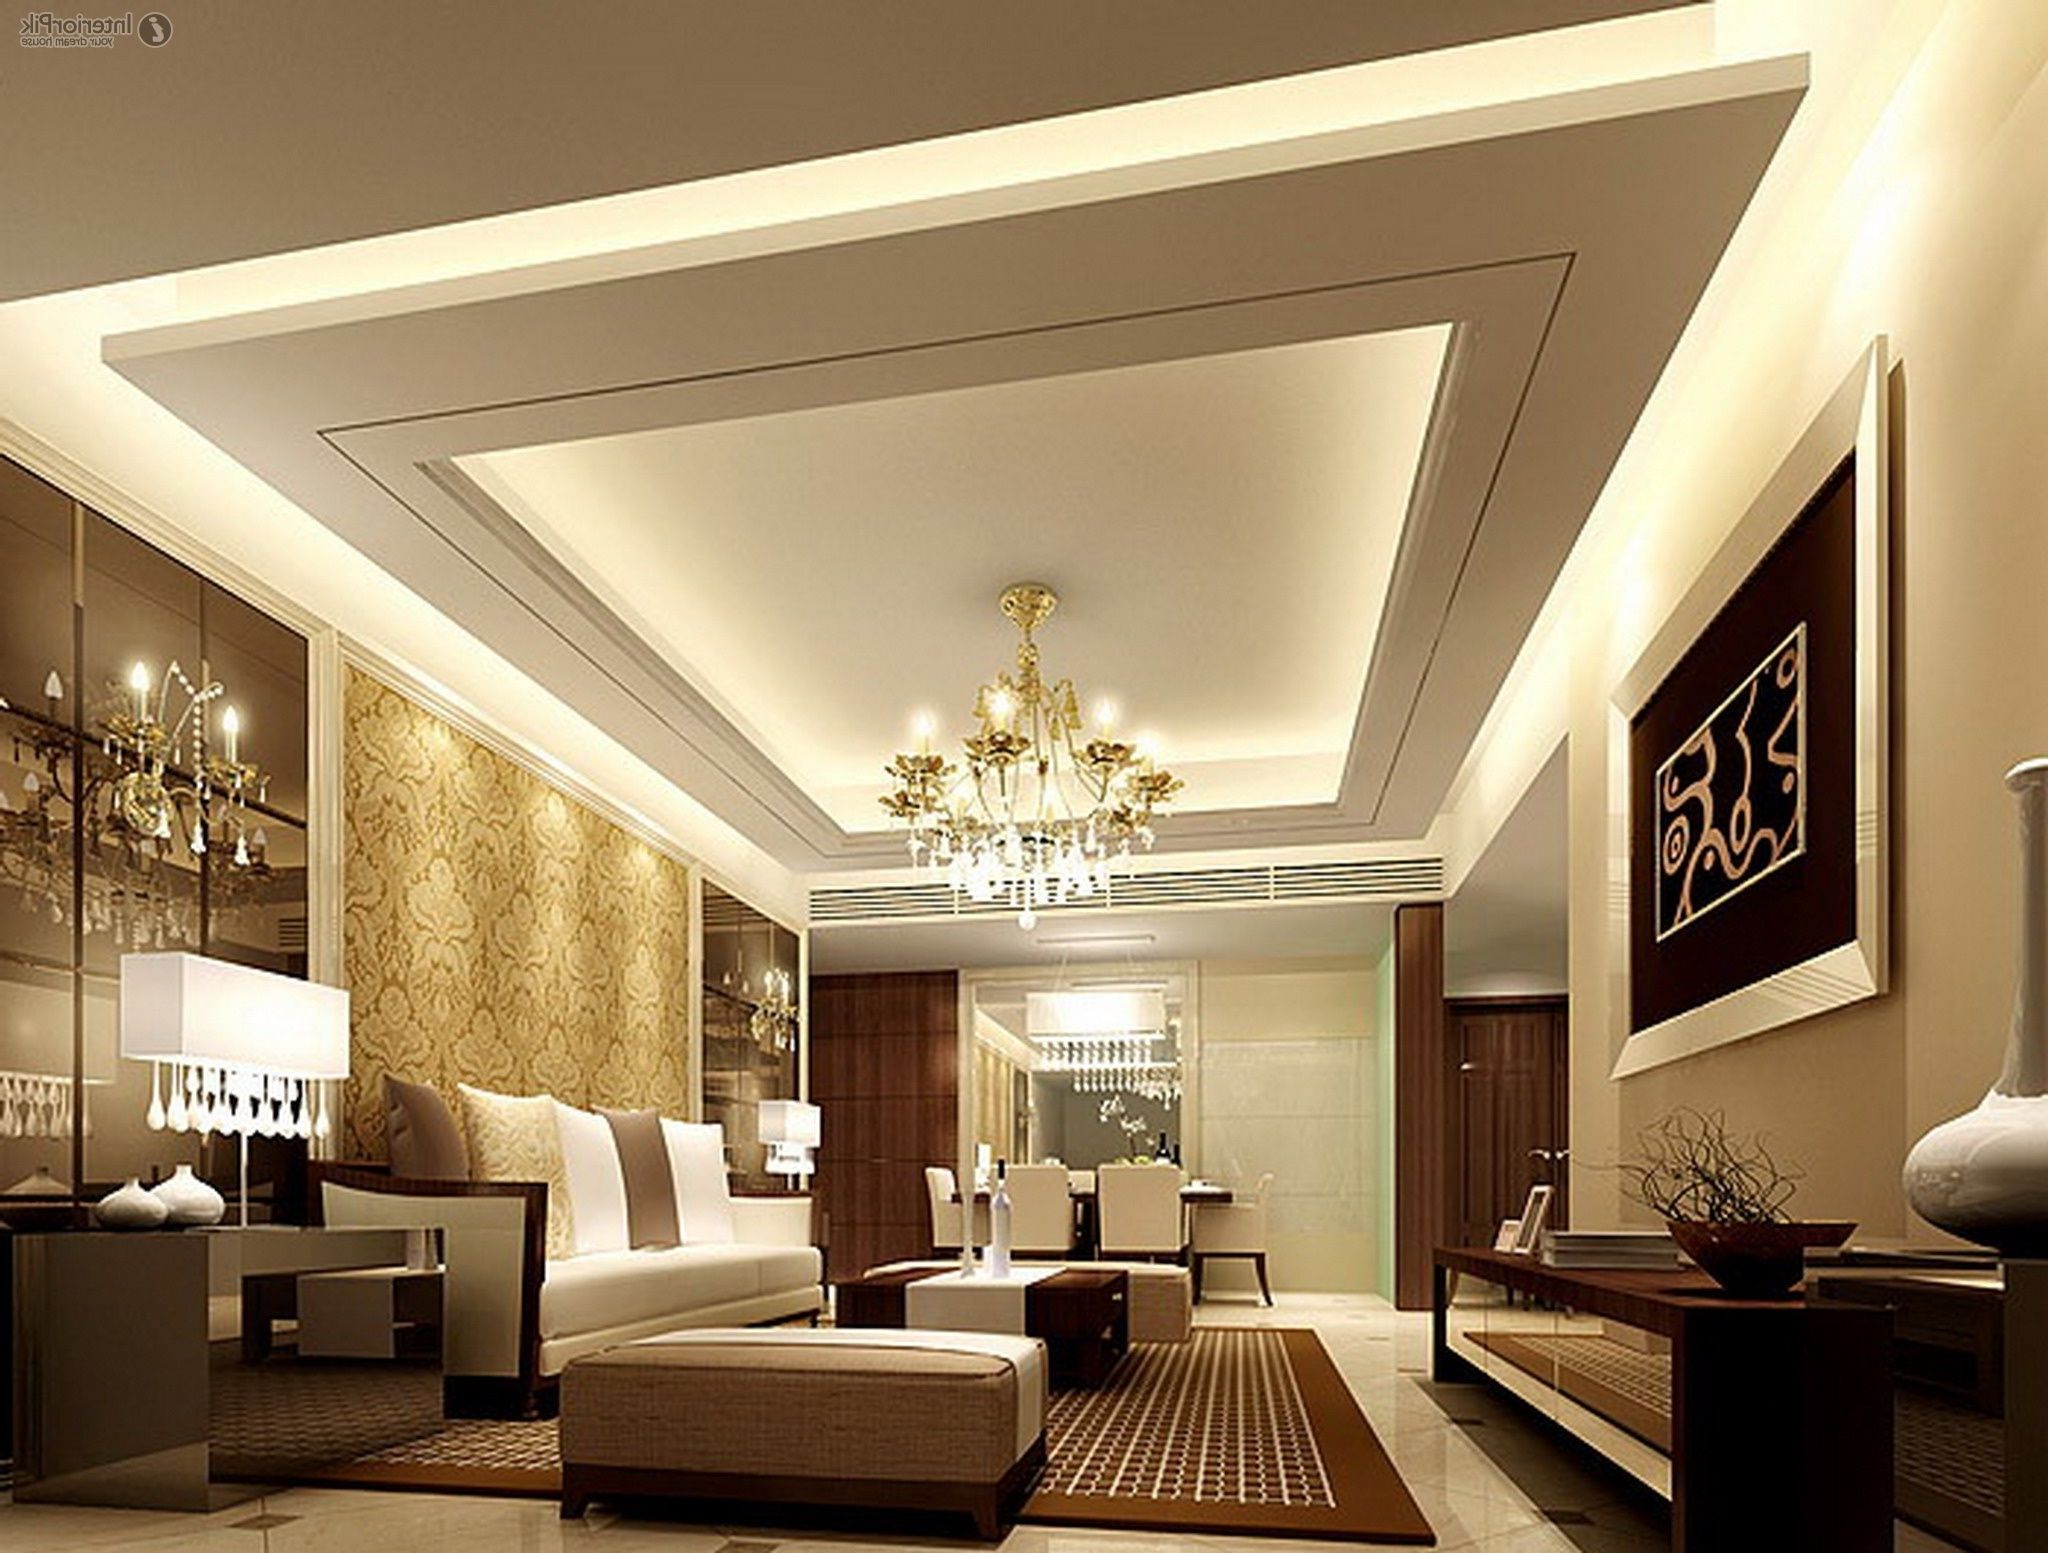 Gypsum Ceiling Design For Living Room Lighting Home Decorate Best Living Room Ceiling Design & Gypsum Ceiling Design For Living Room Lighting Home Decorate Best ...